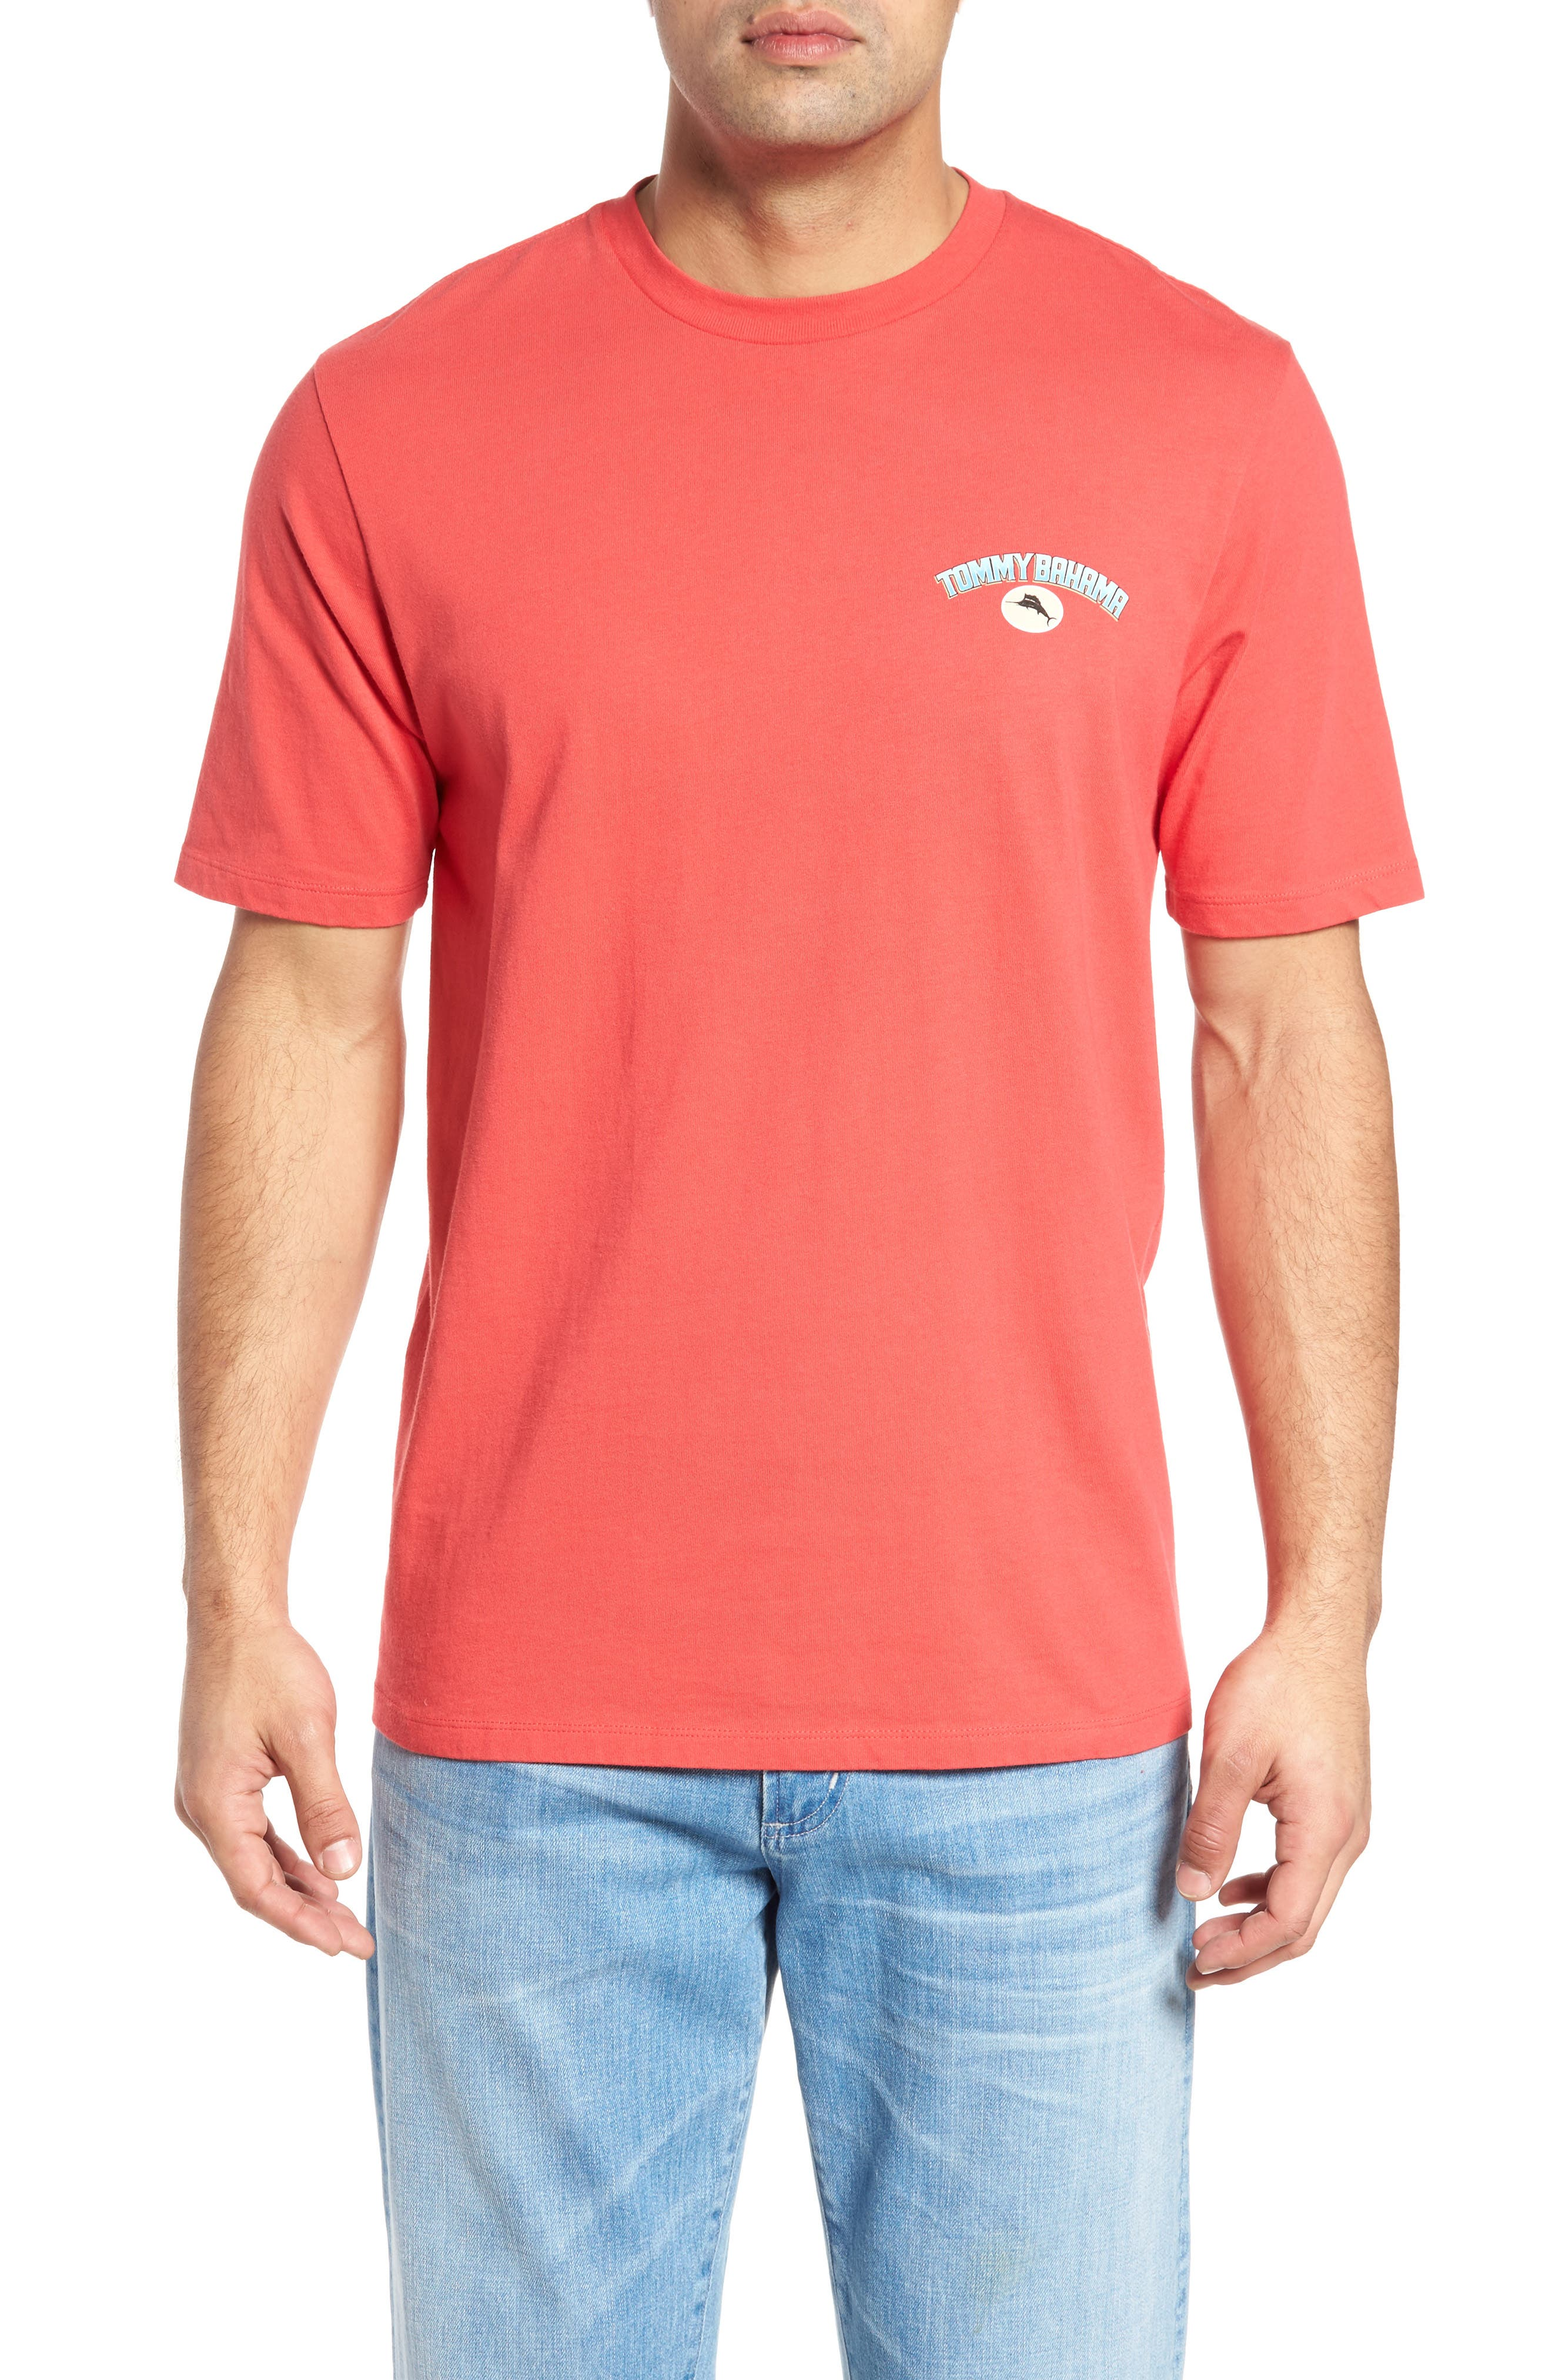 Grate Outdoors T-Shirt,                         Main,                         color, 600